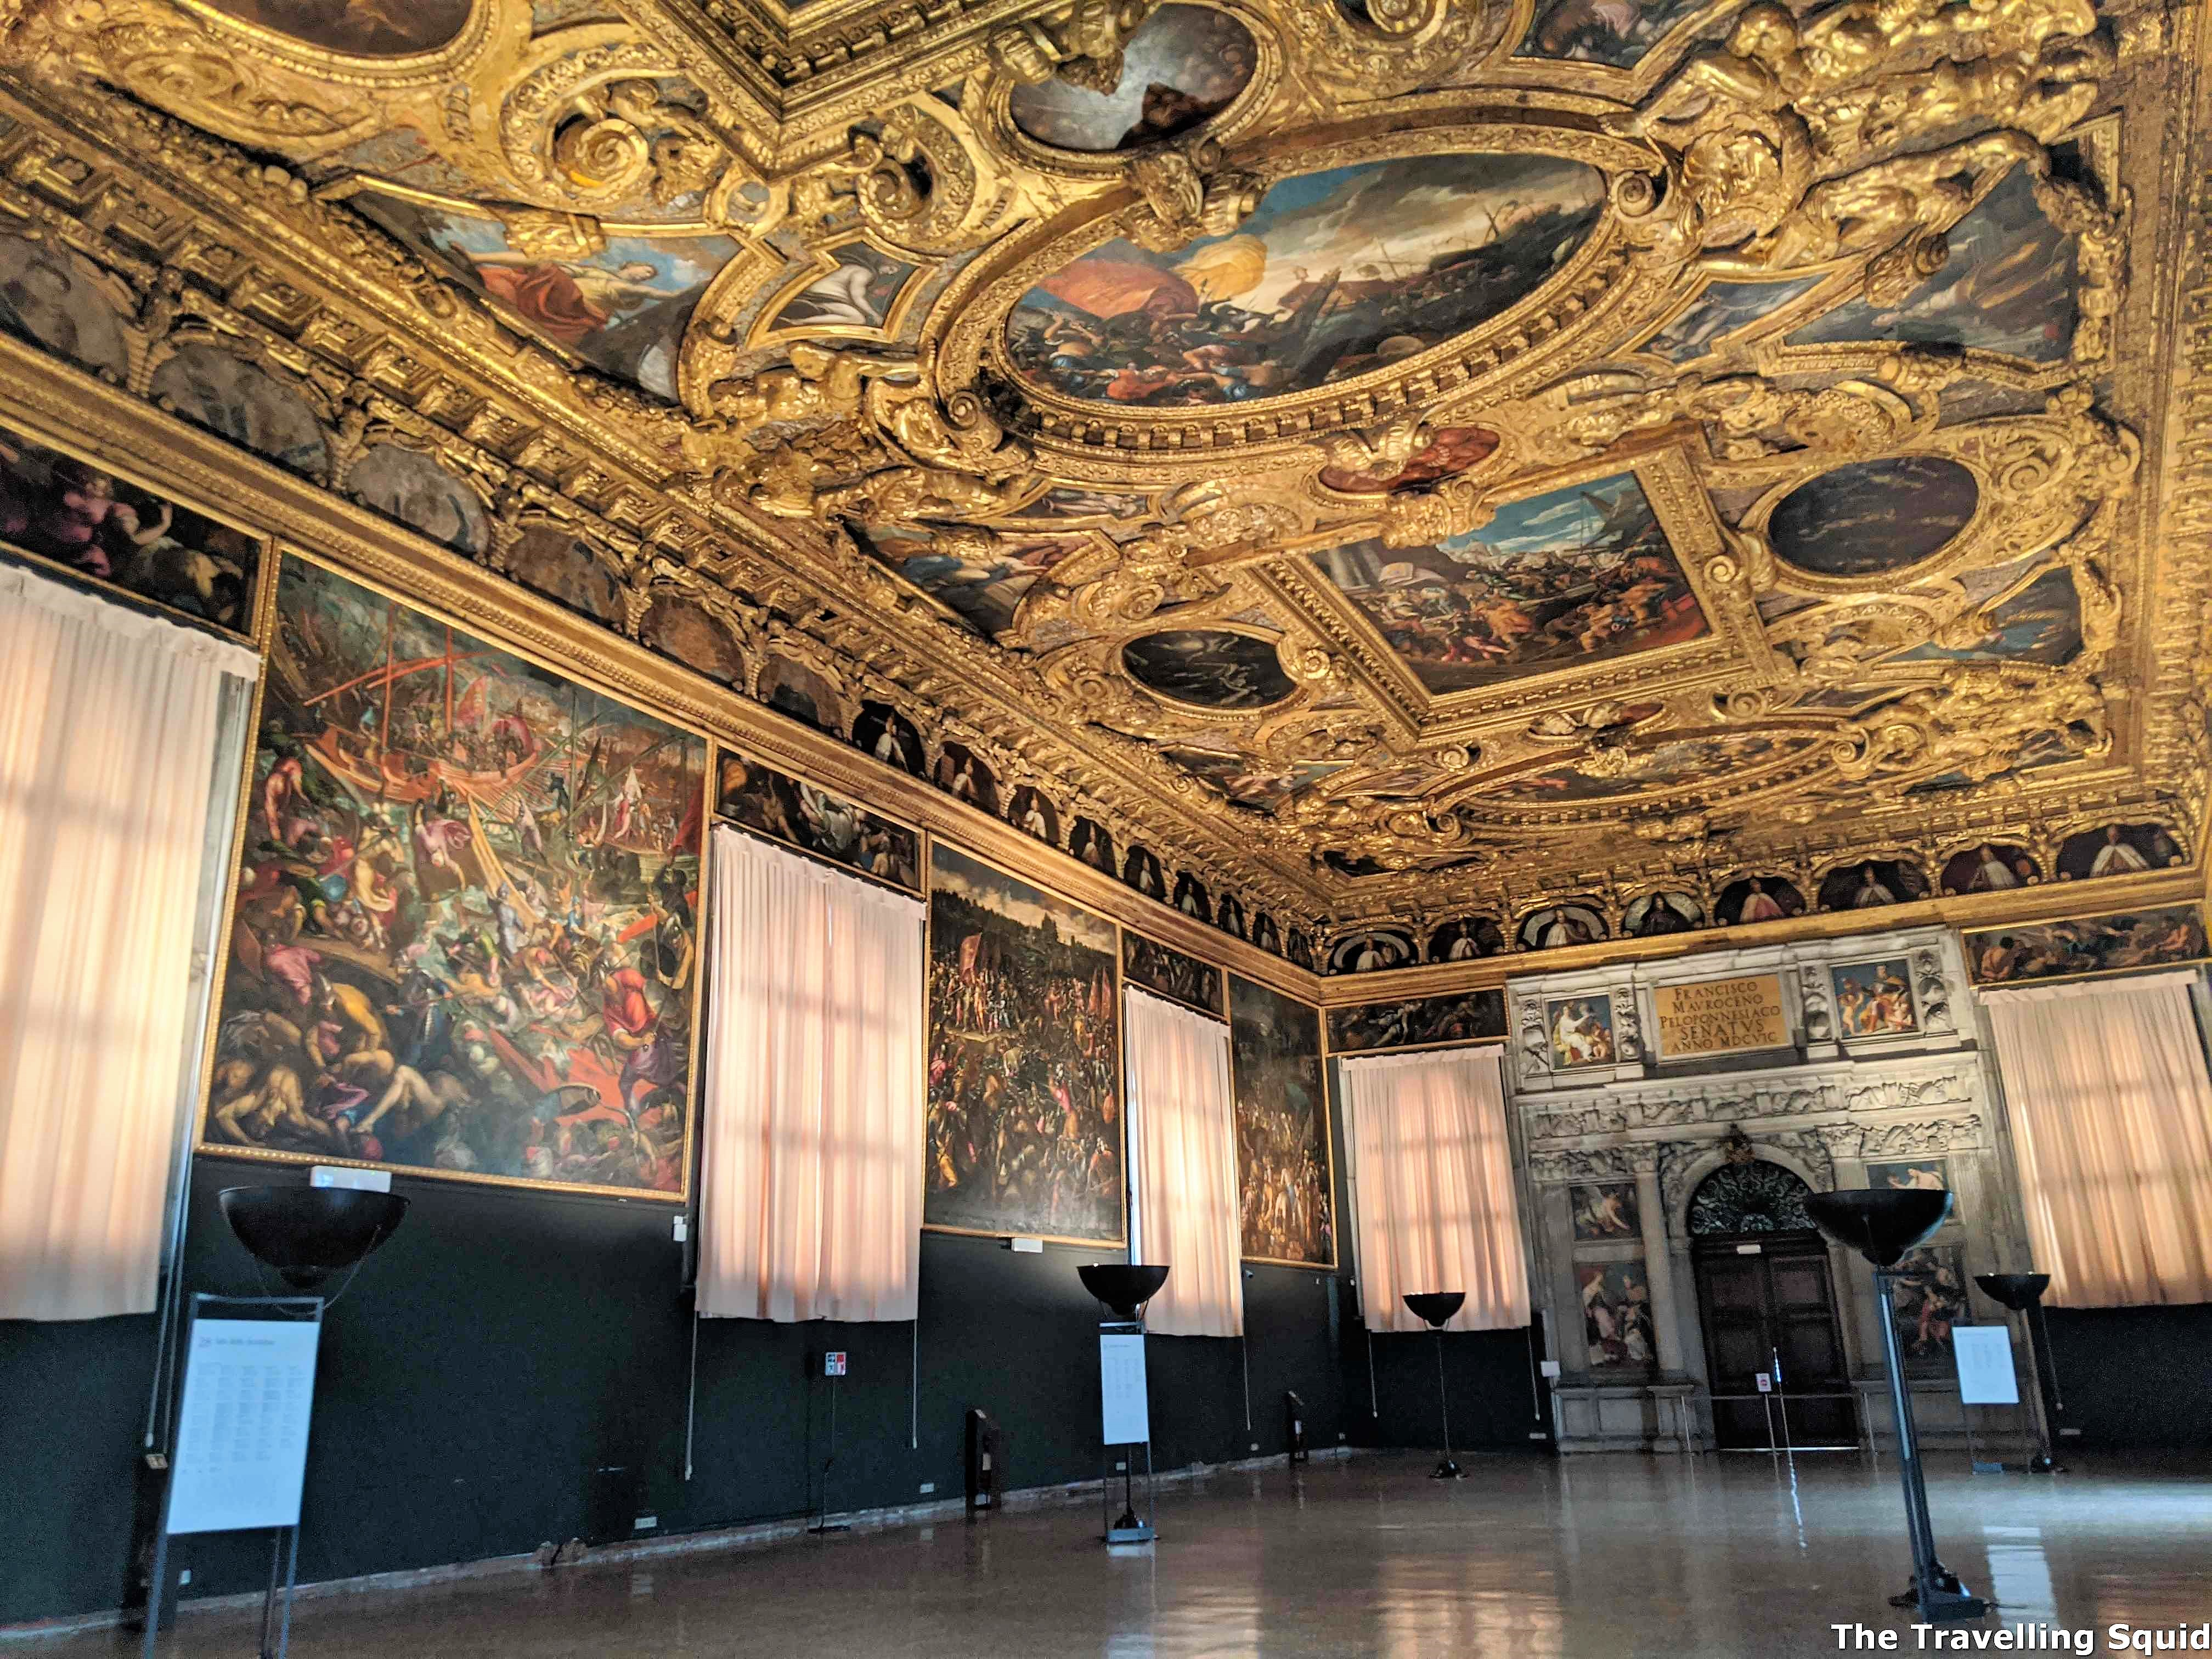 Chamber of the Scrutinio doges palace